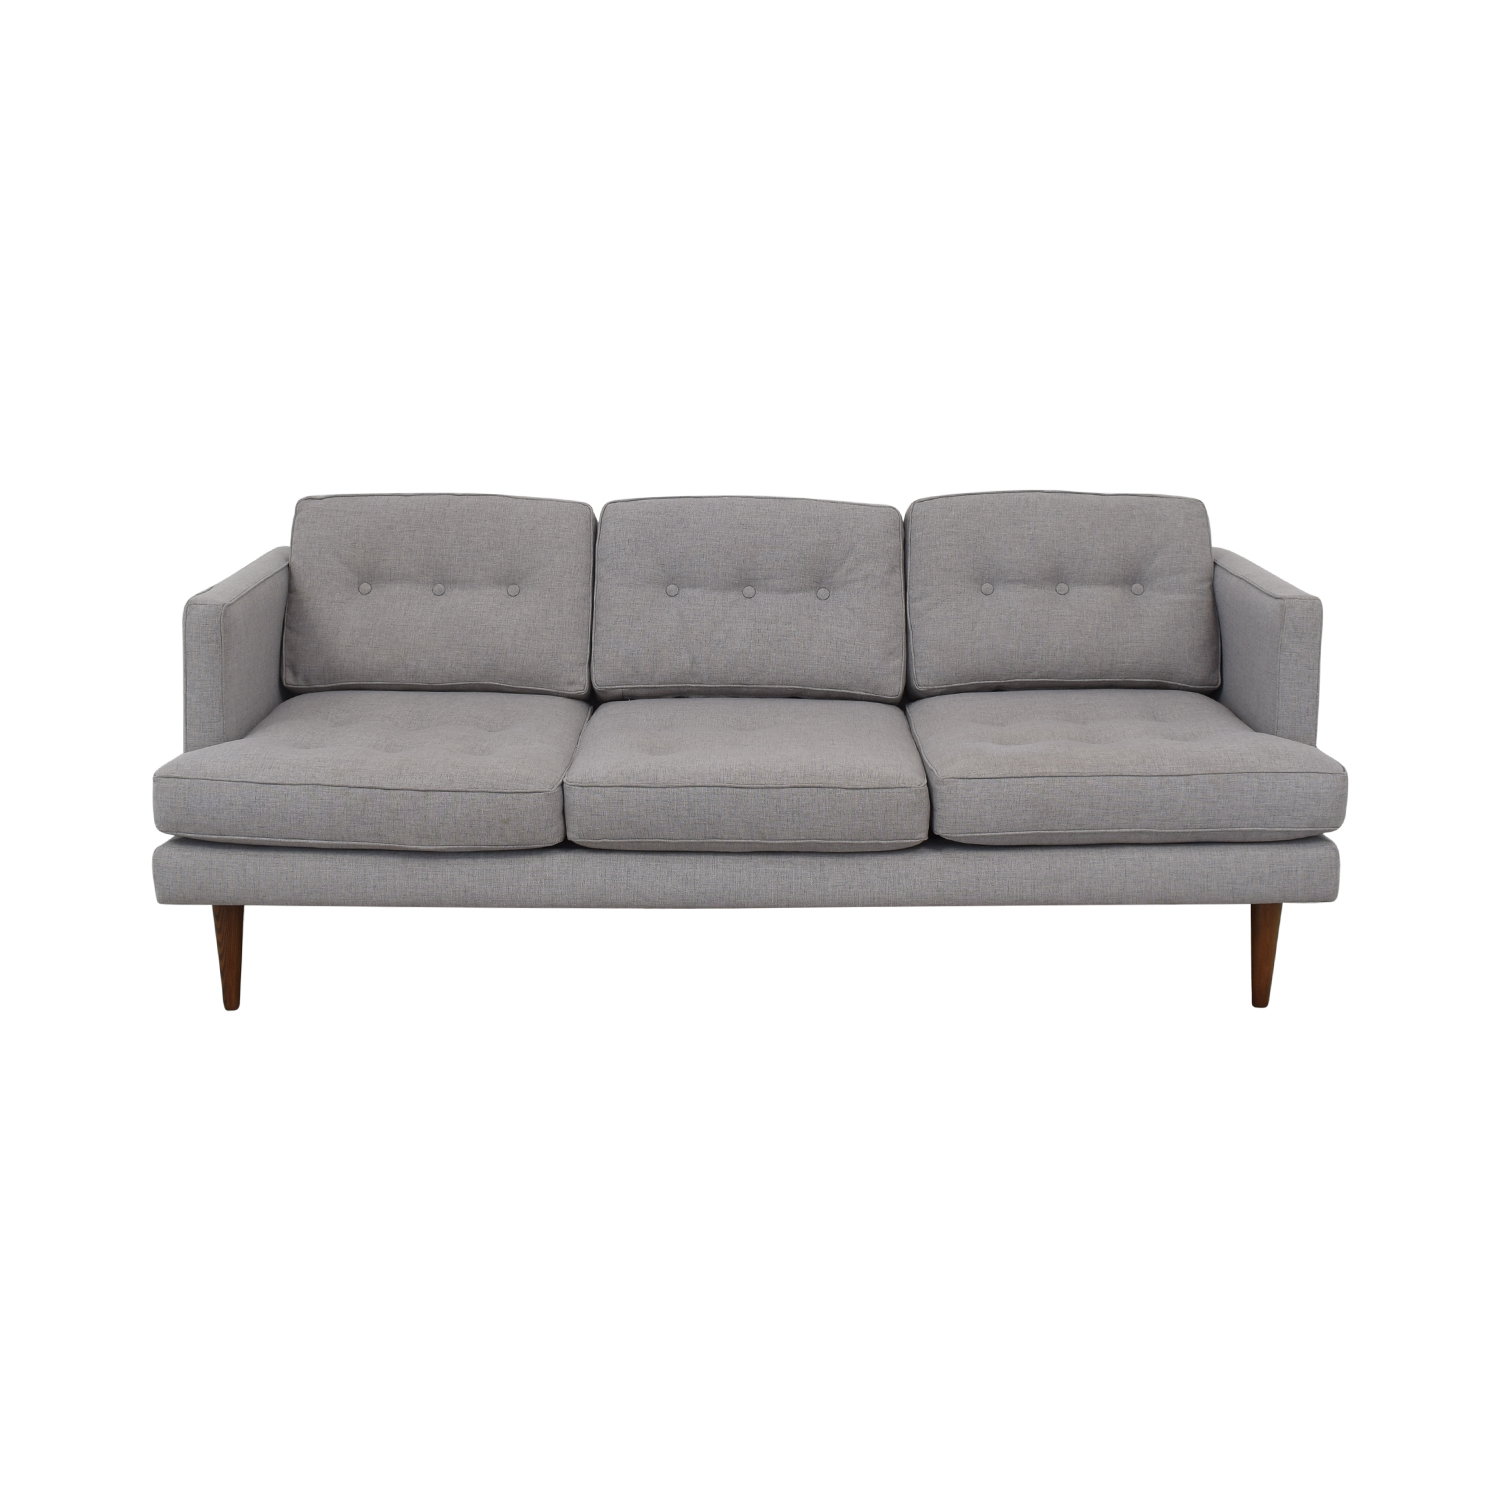 West Elm West Elm Peggy Sofa nyc